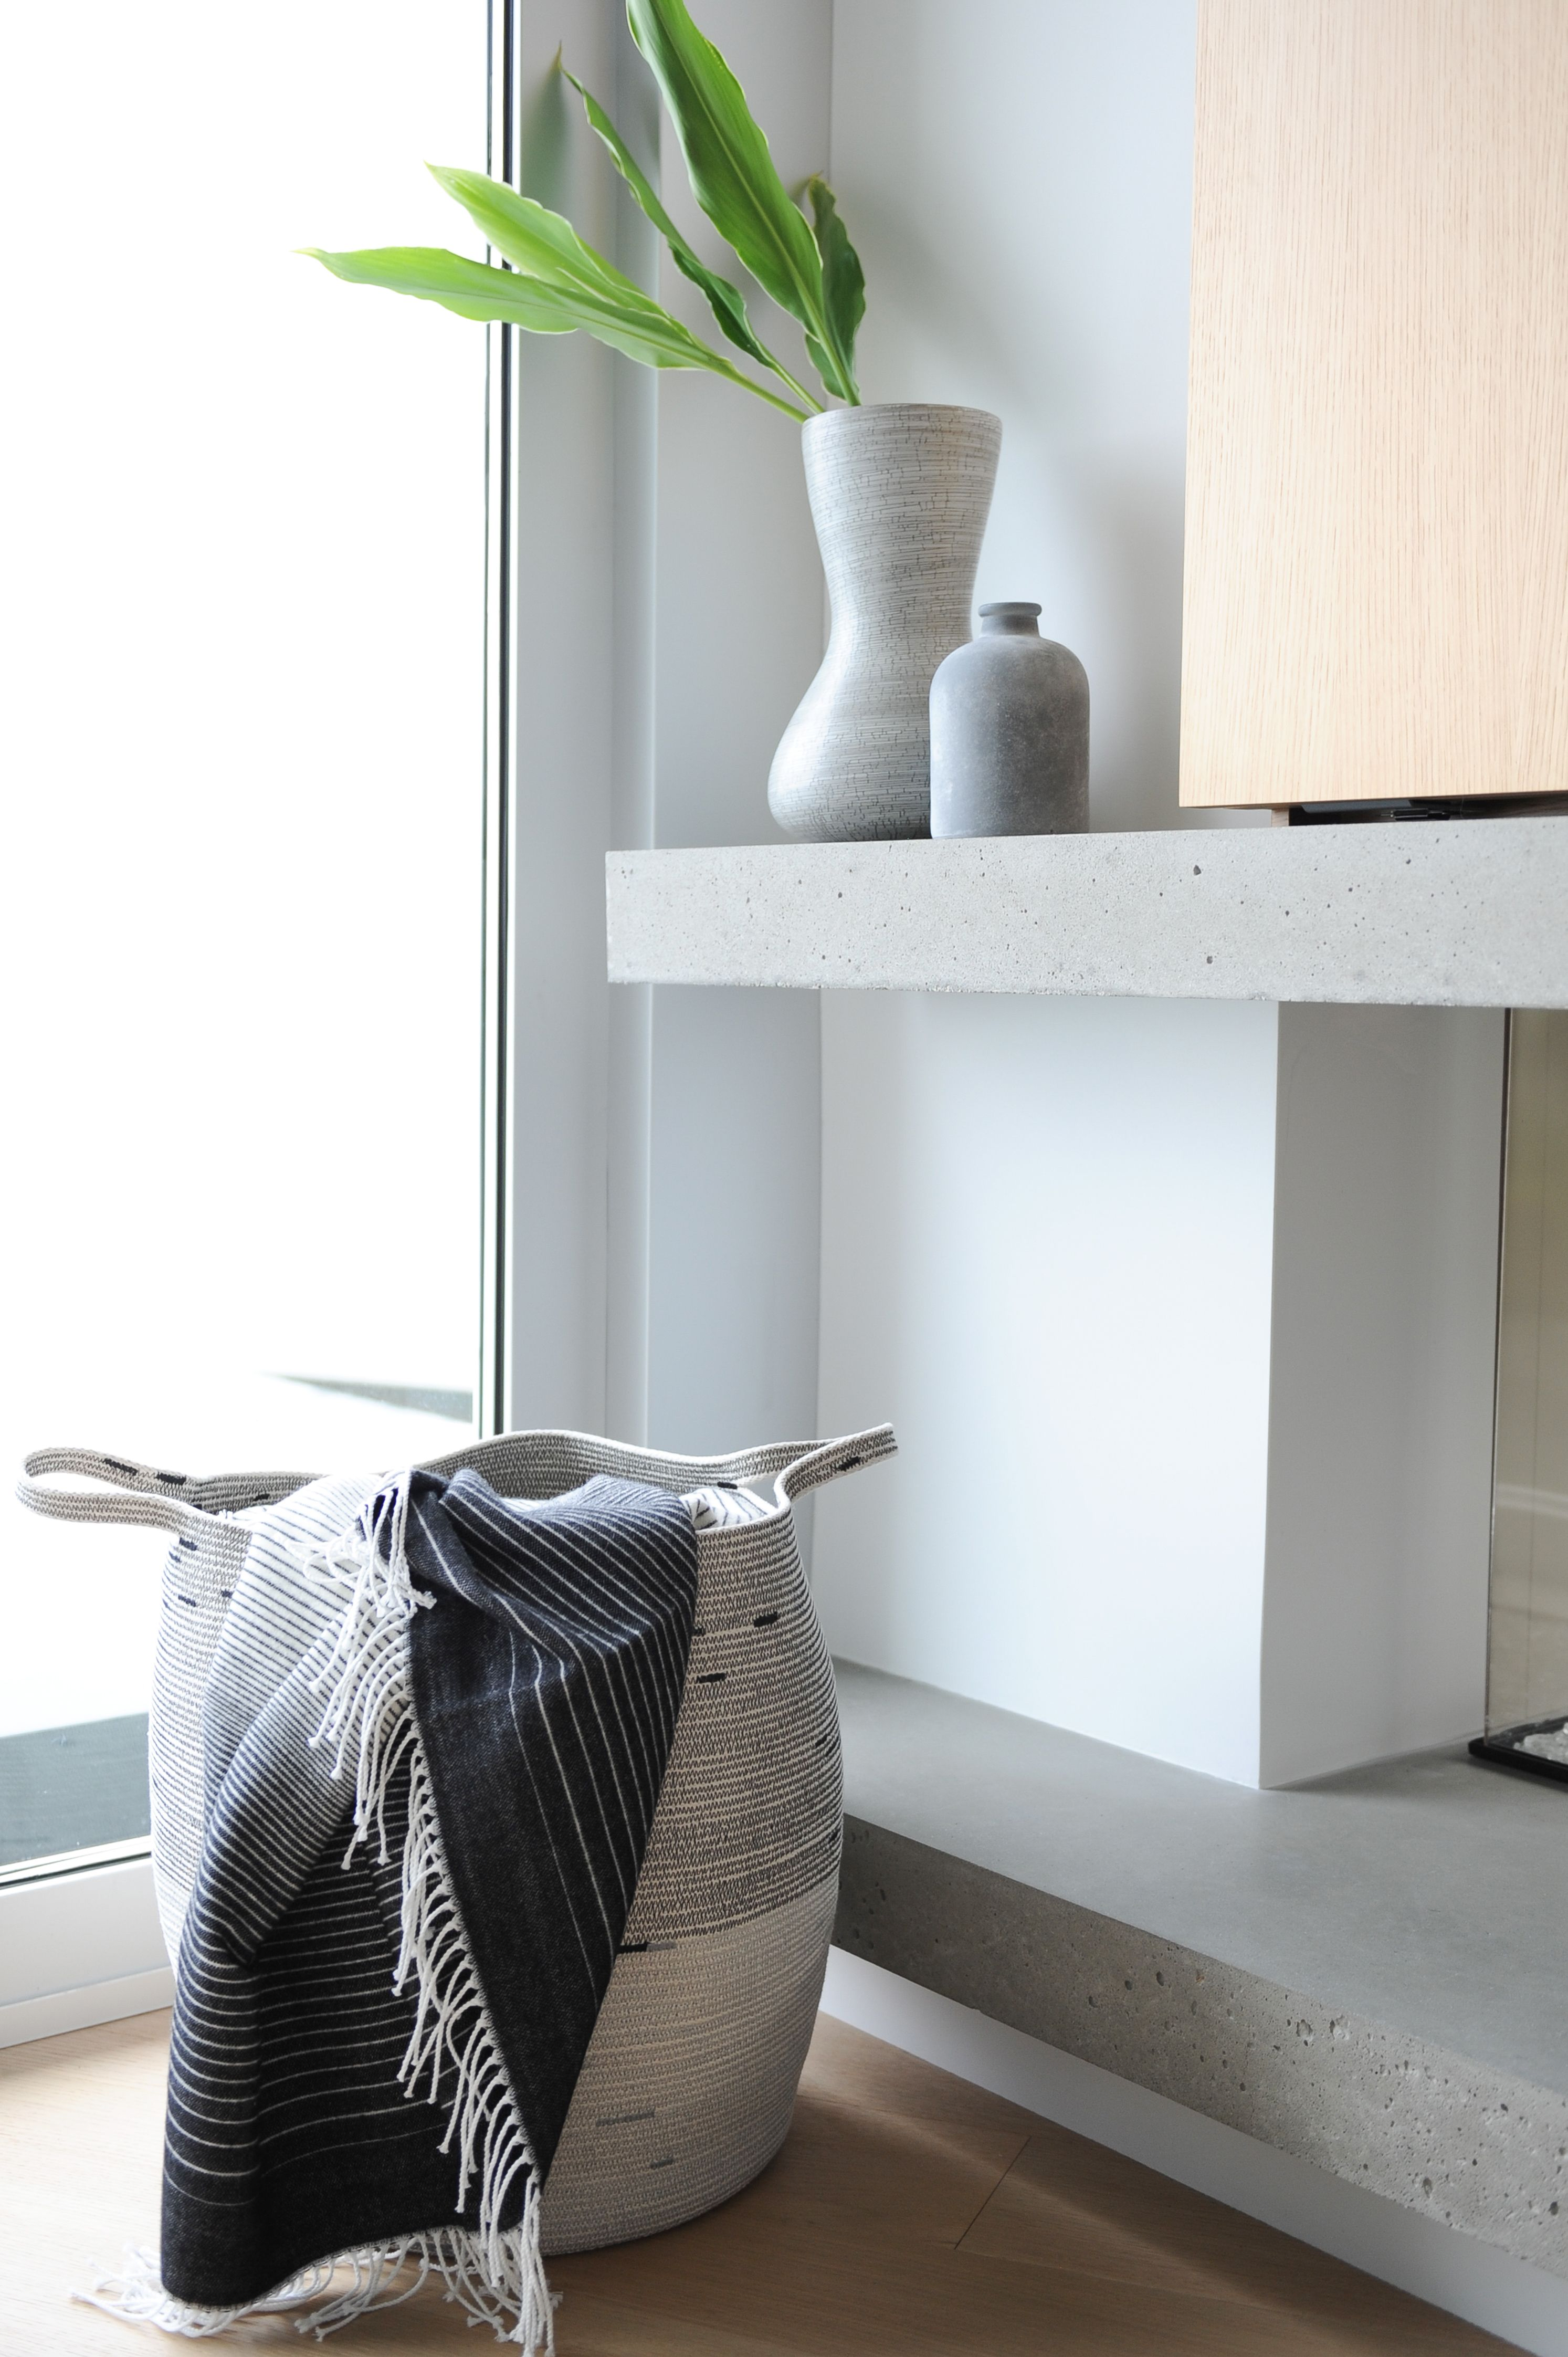 Accessorize with monochromatic vases and baskets. It greats a sense of completion.